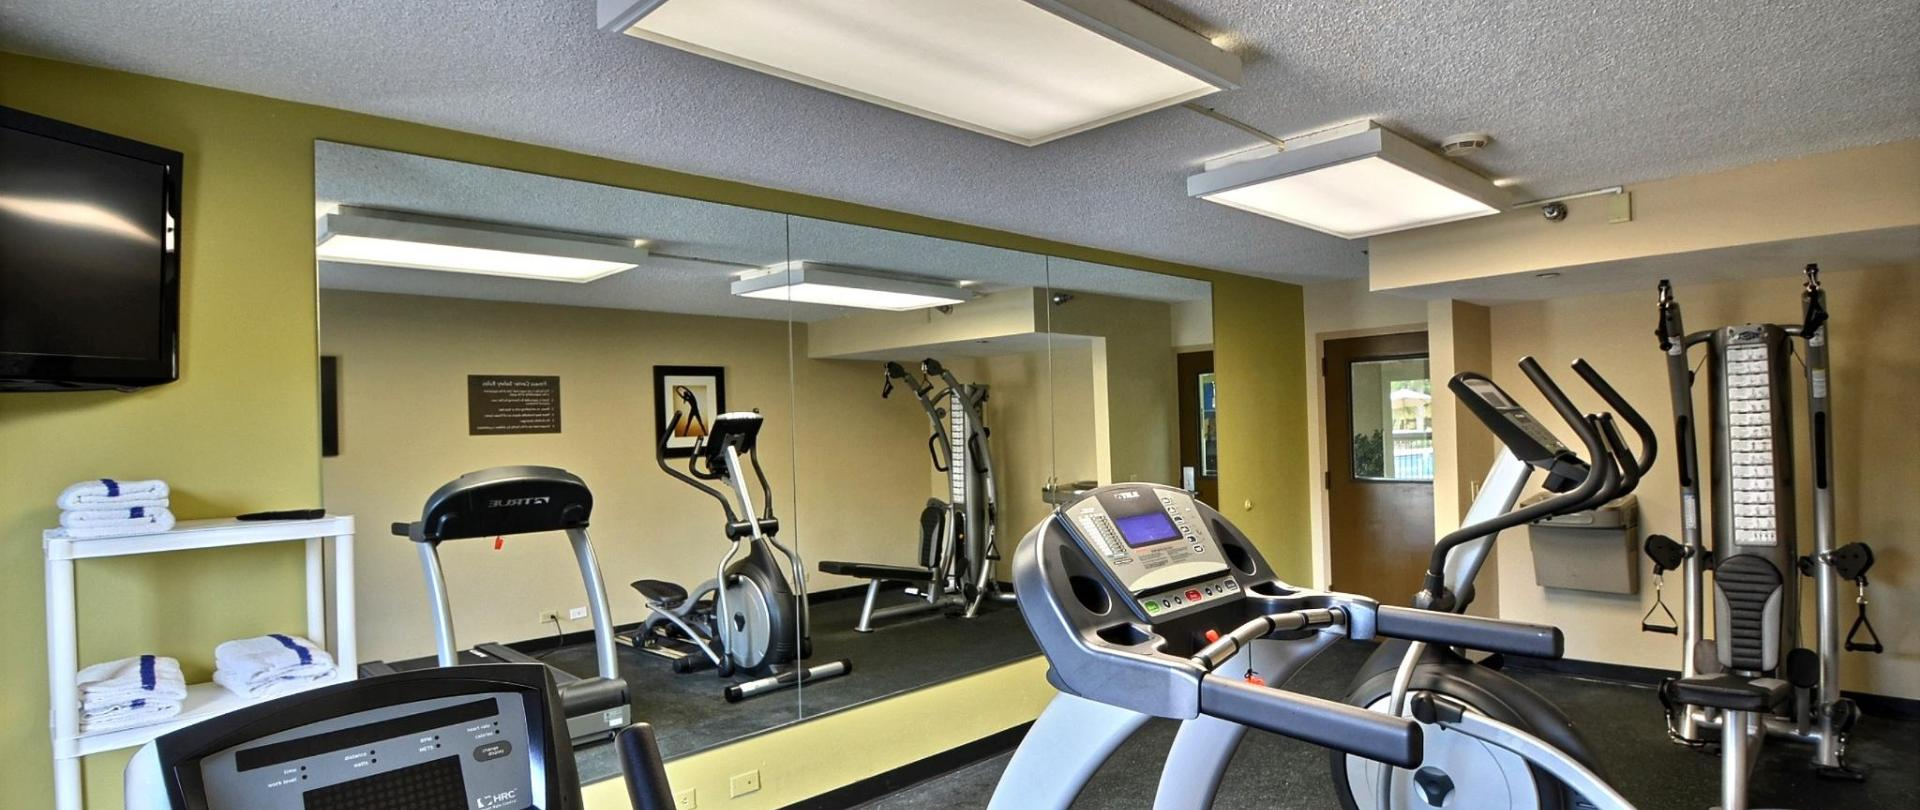 _FLC09_Fitness_Room3.jpg